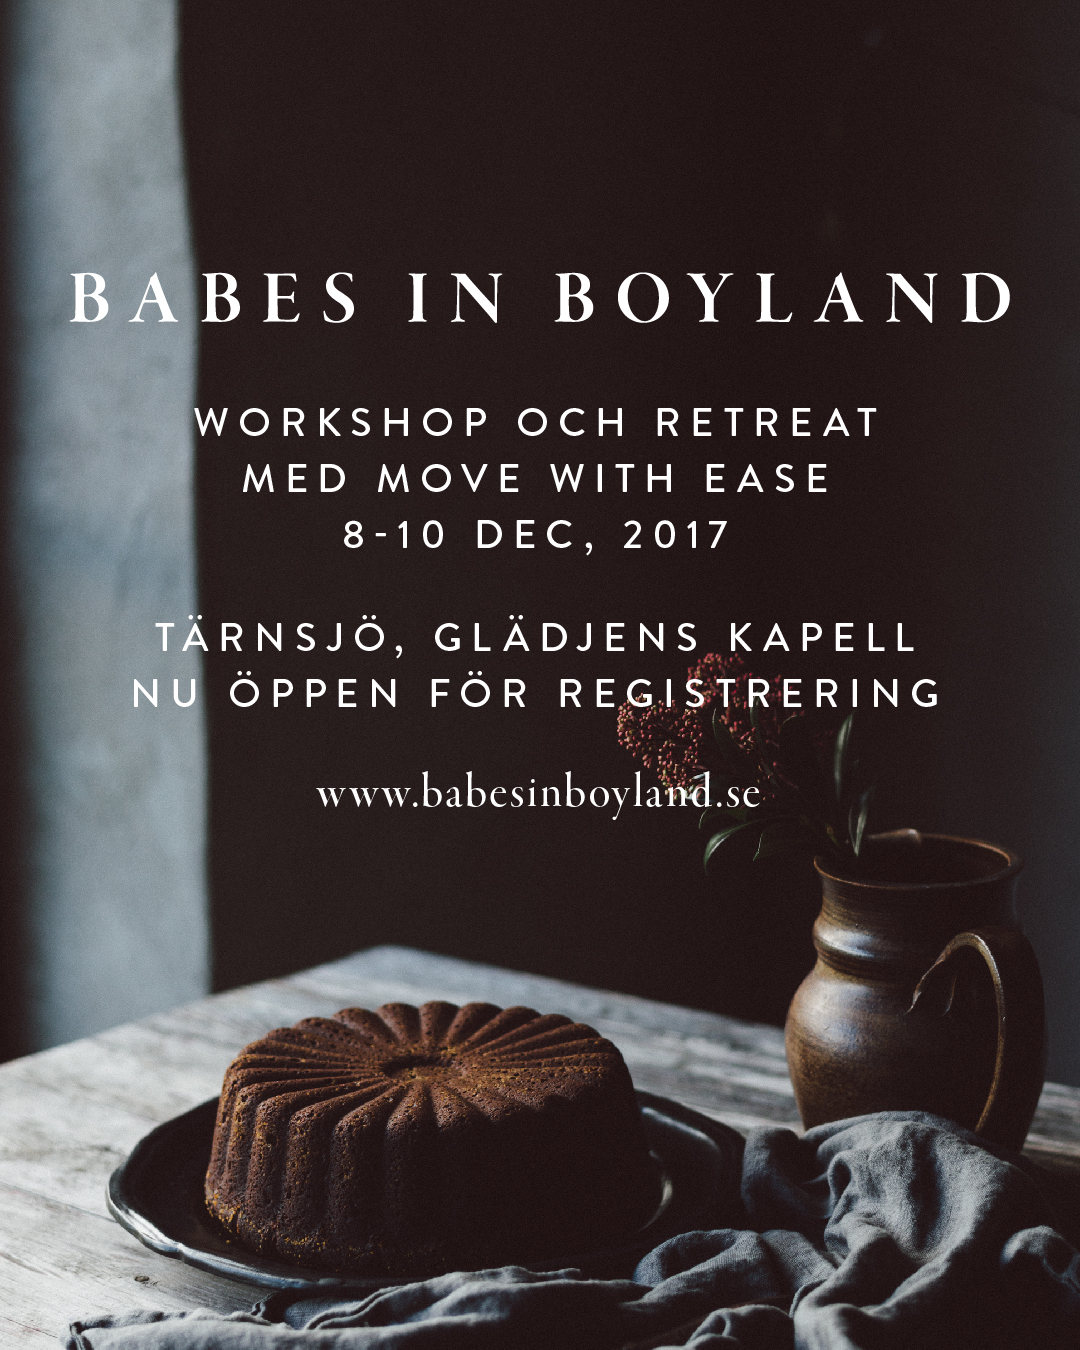 Winter workshop and retreat by Babes in Boyland